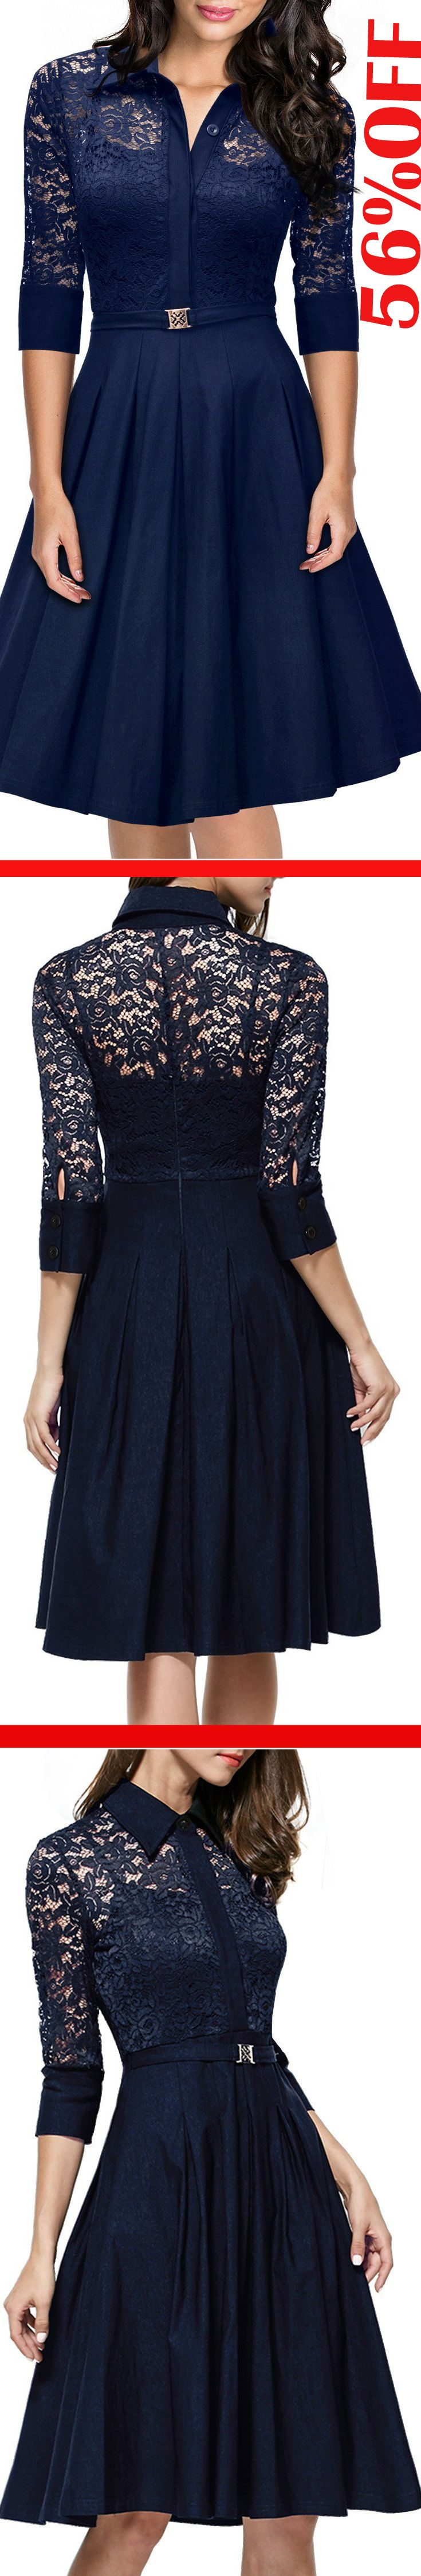 Missmay Women's Vintage 1950s Style 3/4 Sleeve Black Lace Flare A-line Dress..0% Polyester,55%Cotton,30%Chinlon,5%Spandex..Sale: $36.99 & Free Return on some sizes and colors..http://amzn.to/2ezDFJq